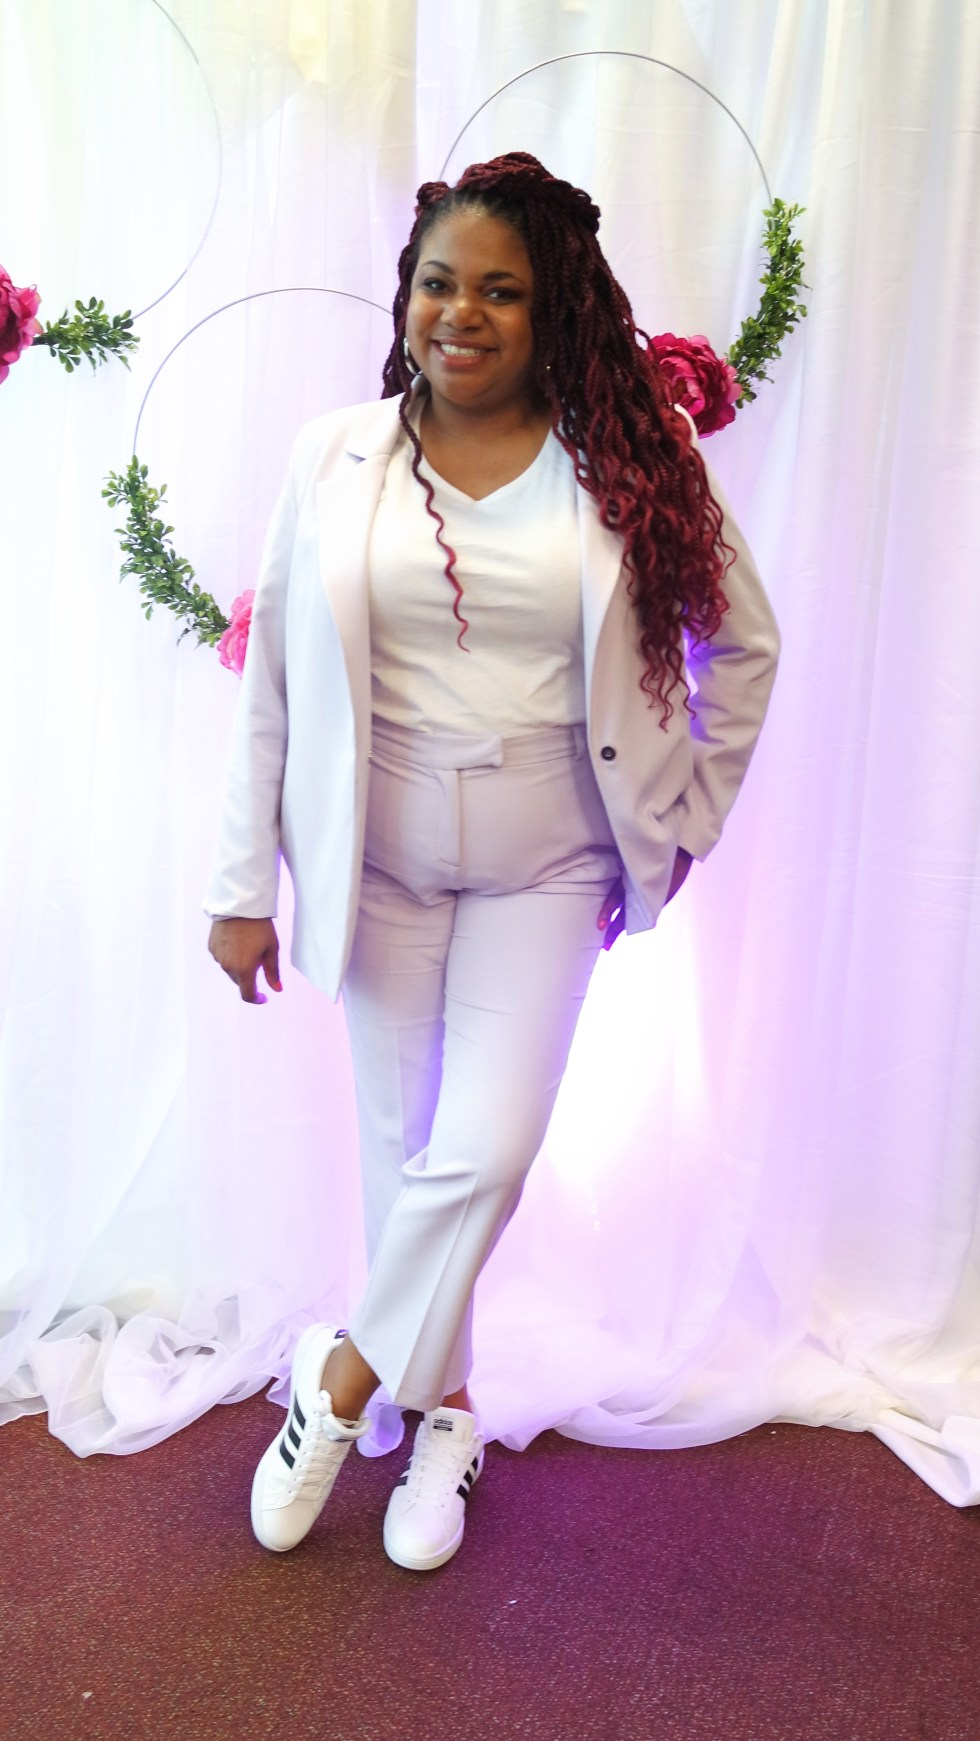 Lavender SimplyBe Suit